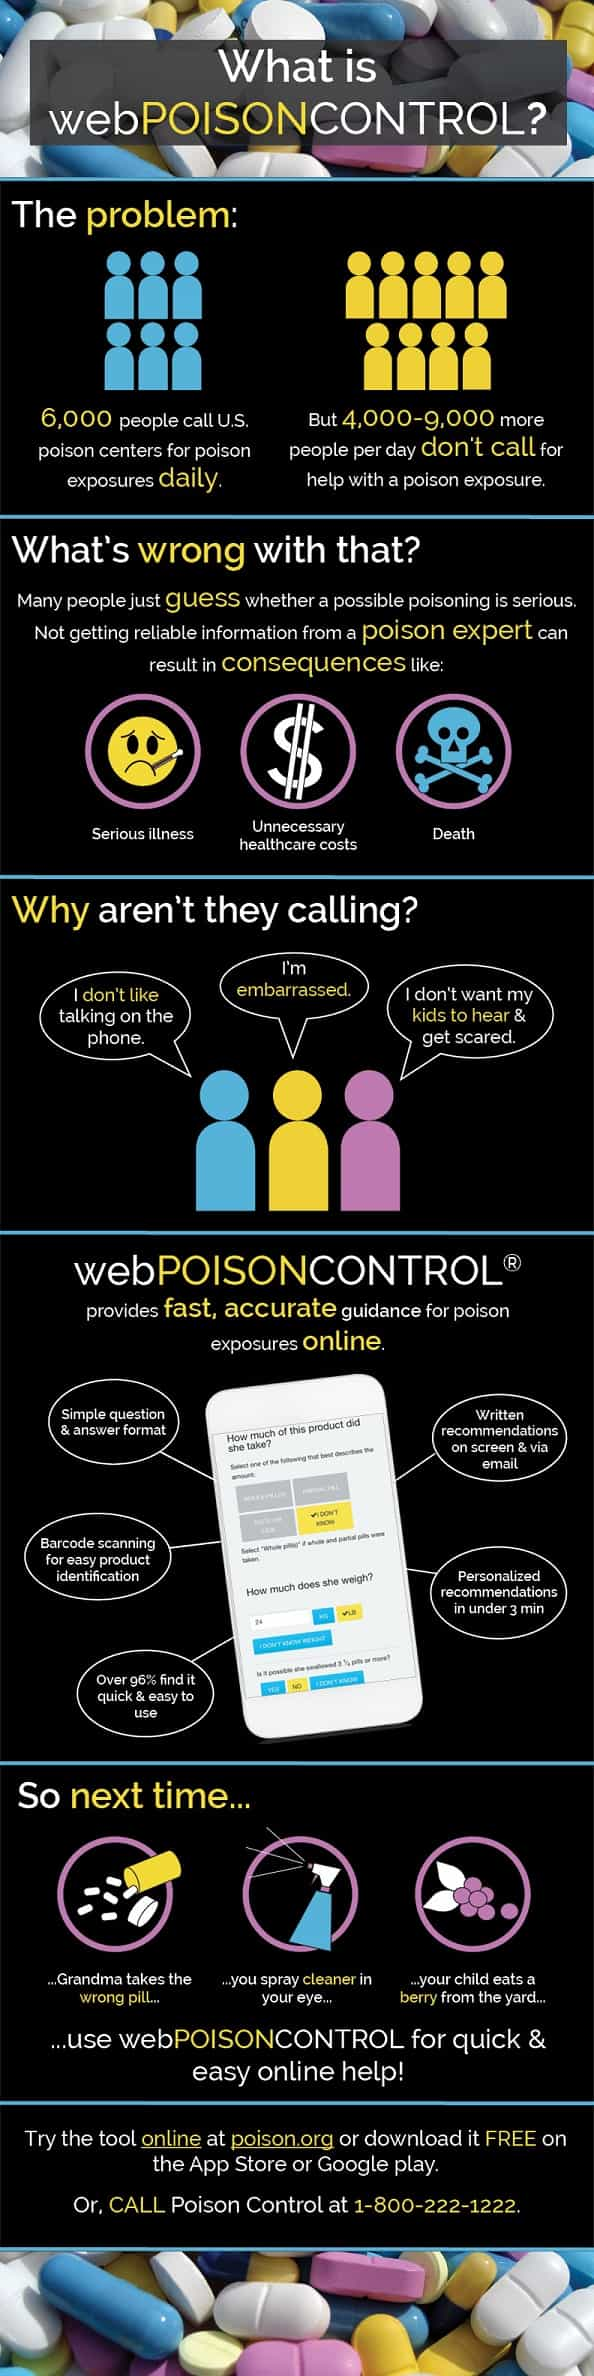 what is webPOISONCONTROL infographic